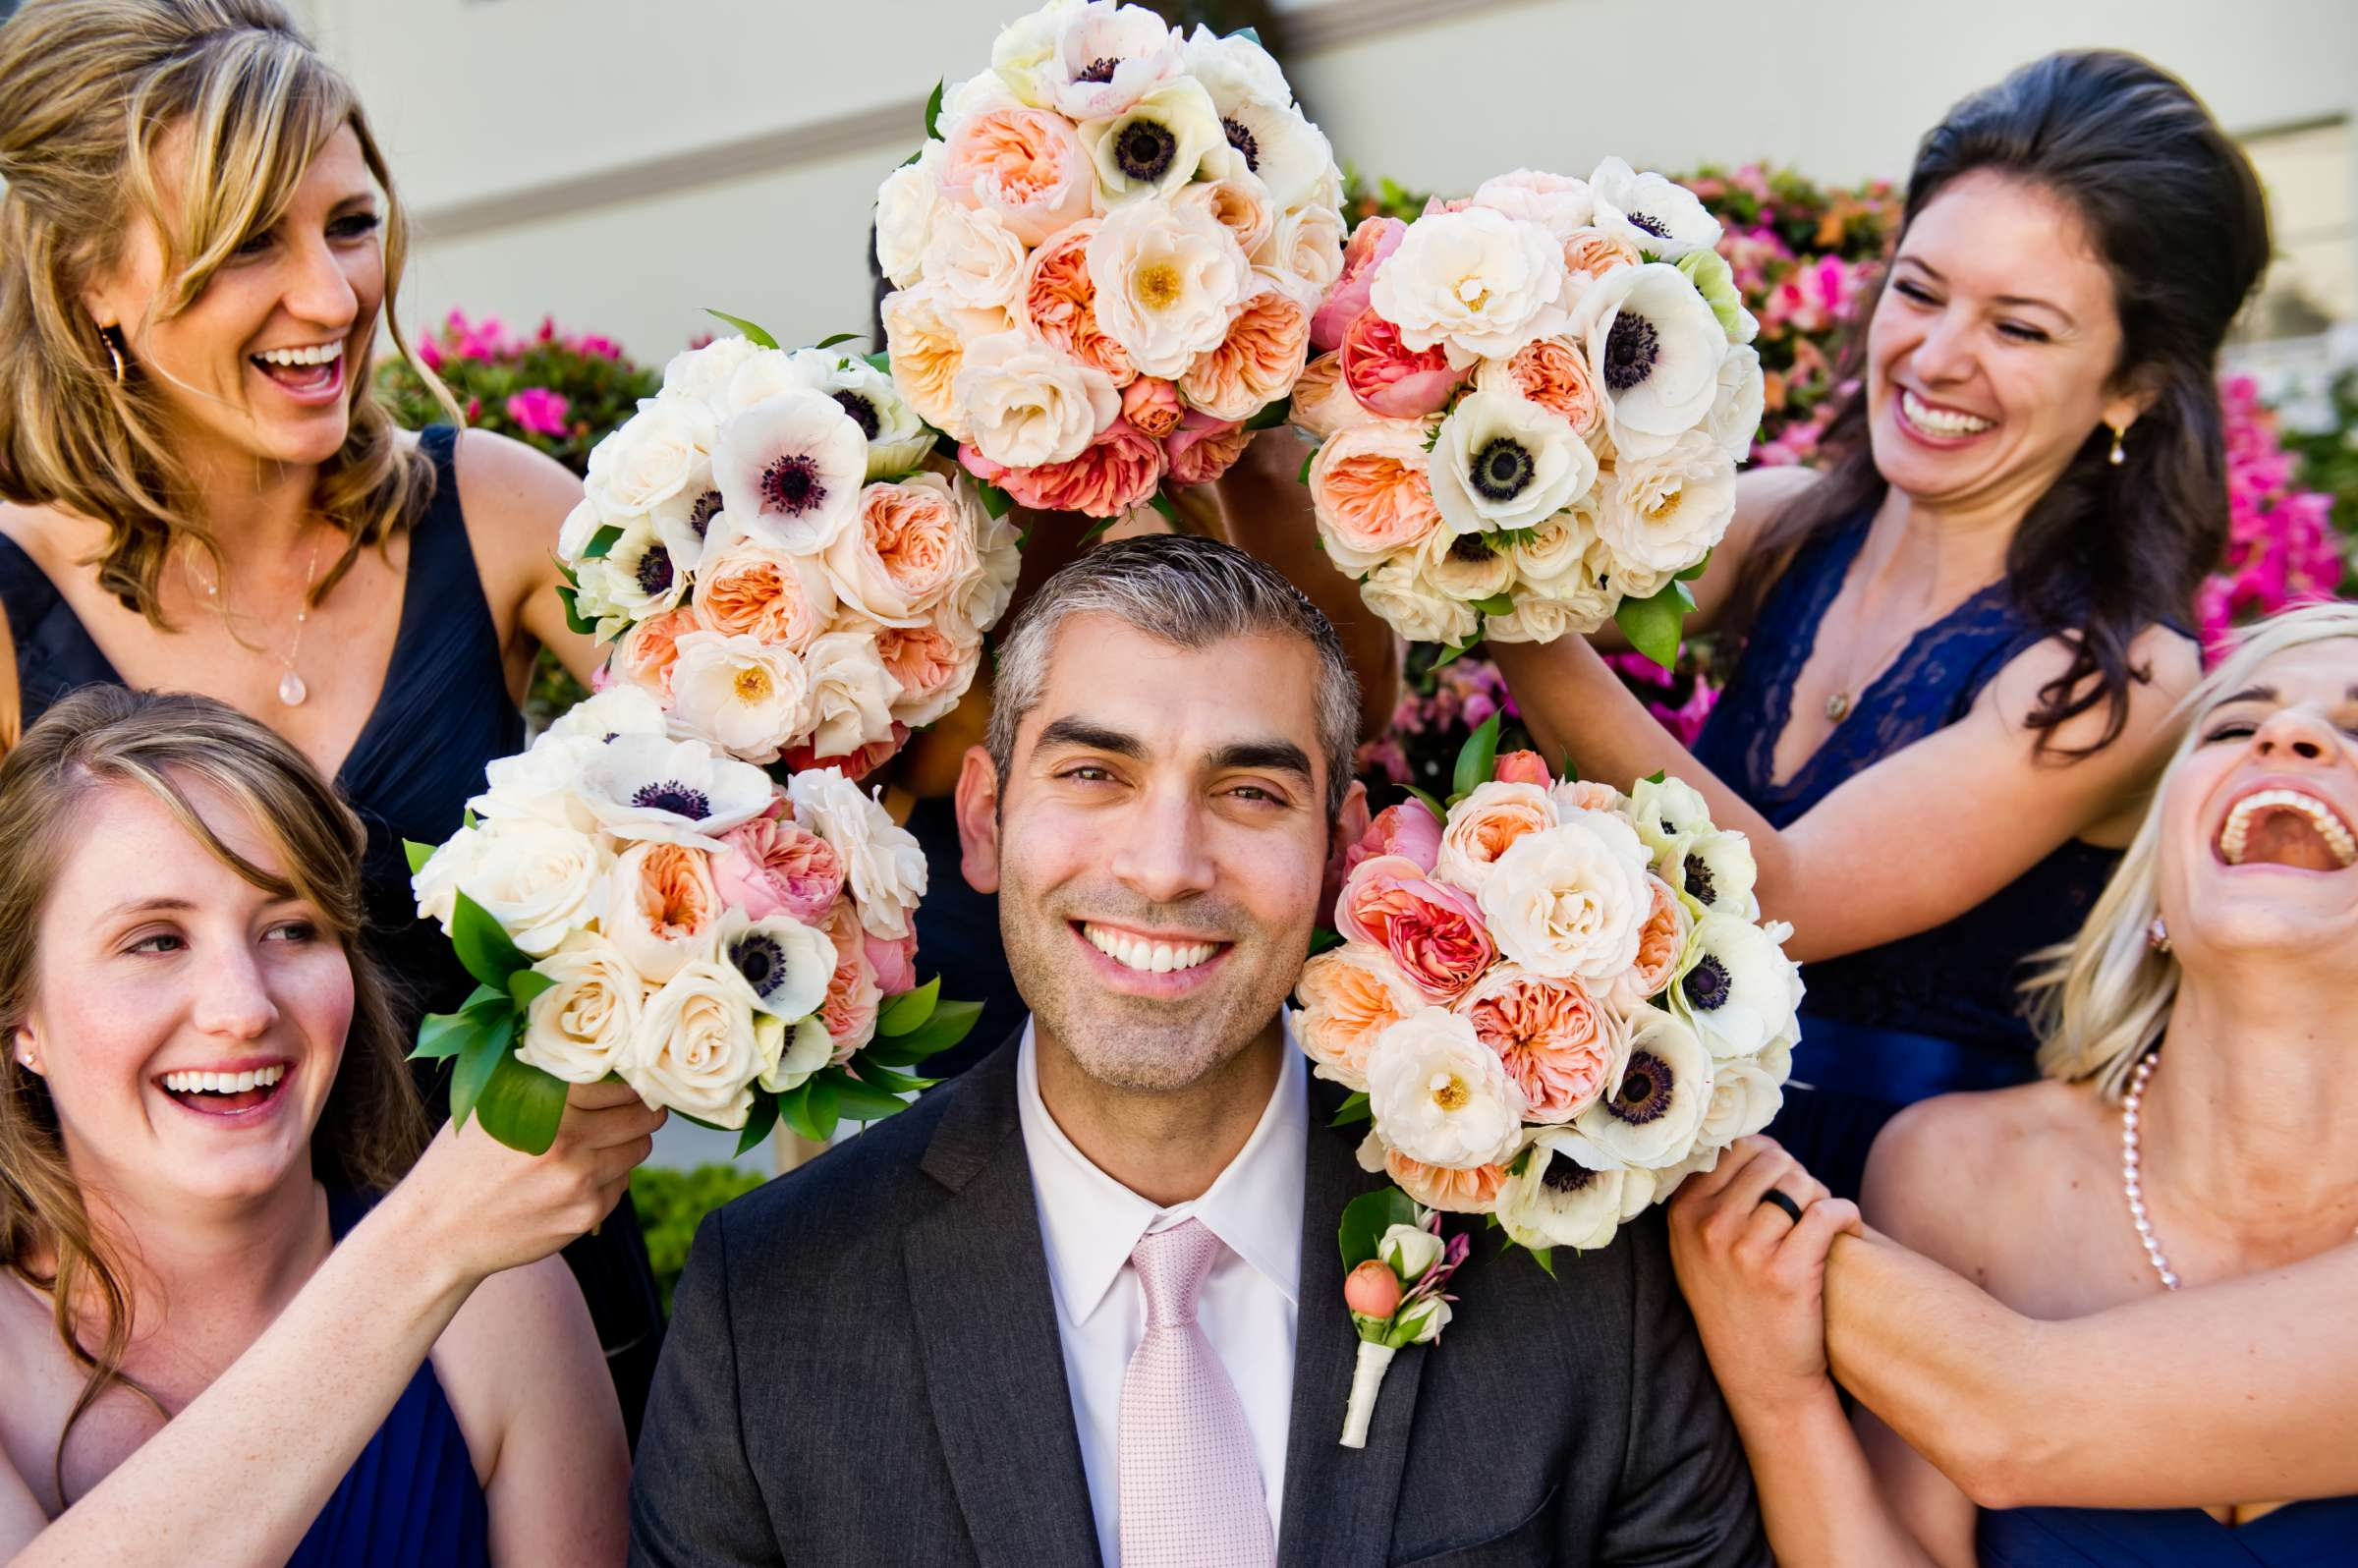 Bouquet at Ultimate Skybox Wedding, Chelsea and Frank Wedding Photo #48 by True Photography